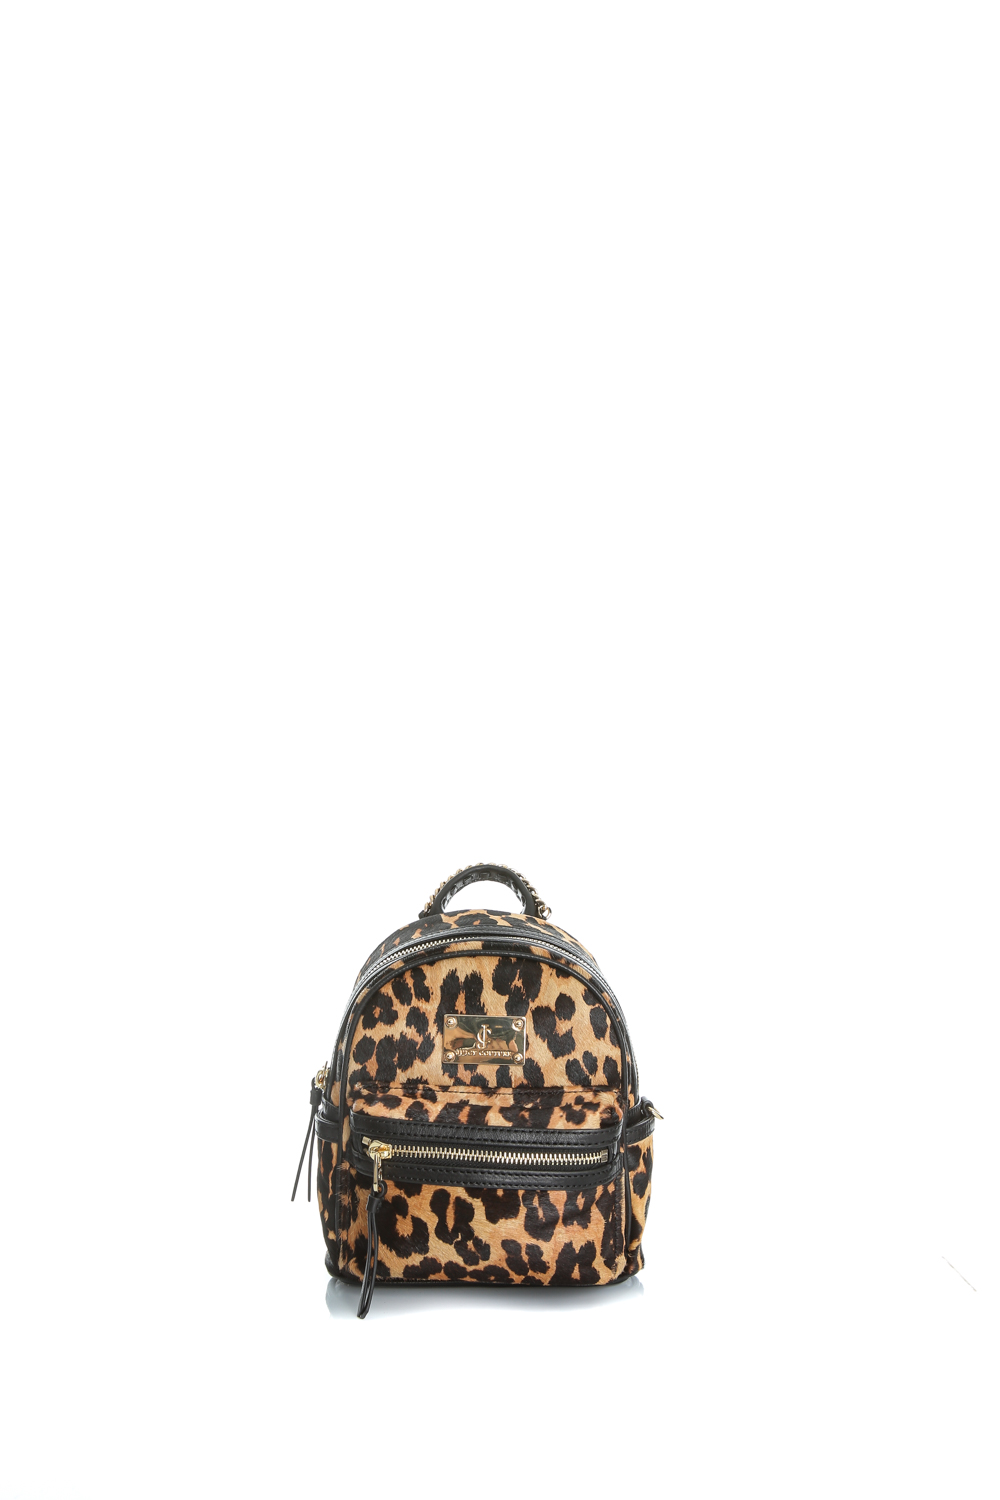 CollectiveOnline JUICY COUTURE - Γυναικείο backpack JUICY SOLSTICE animal  print 1f7eab9a83b